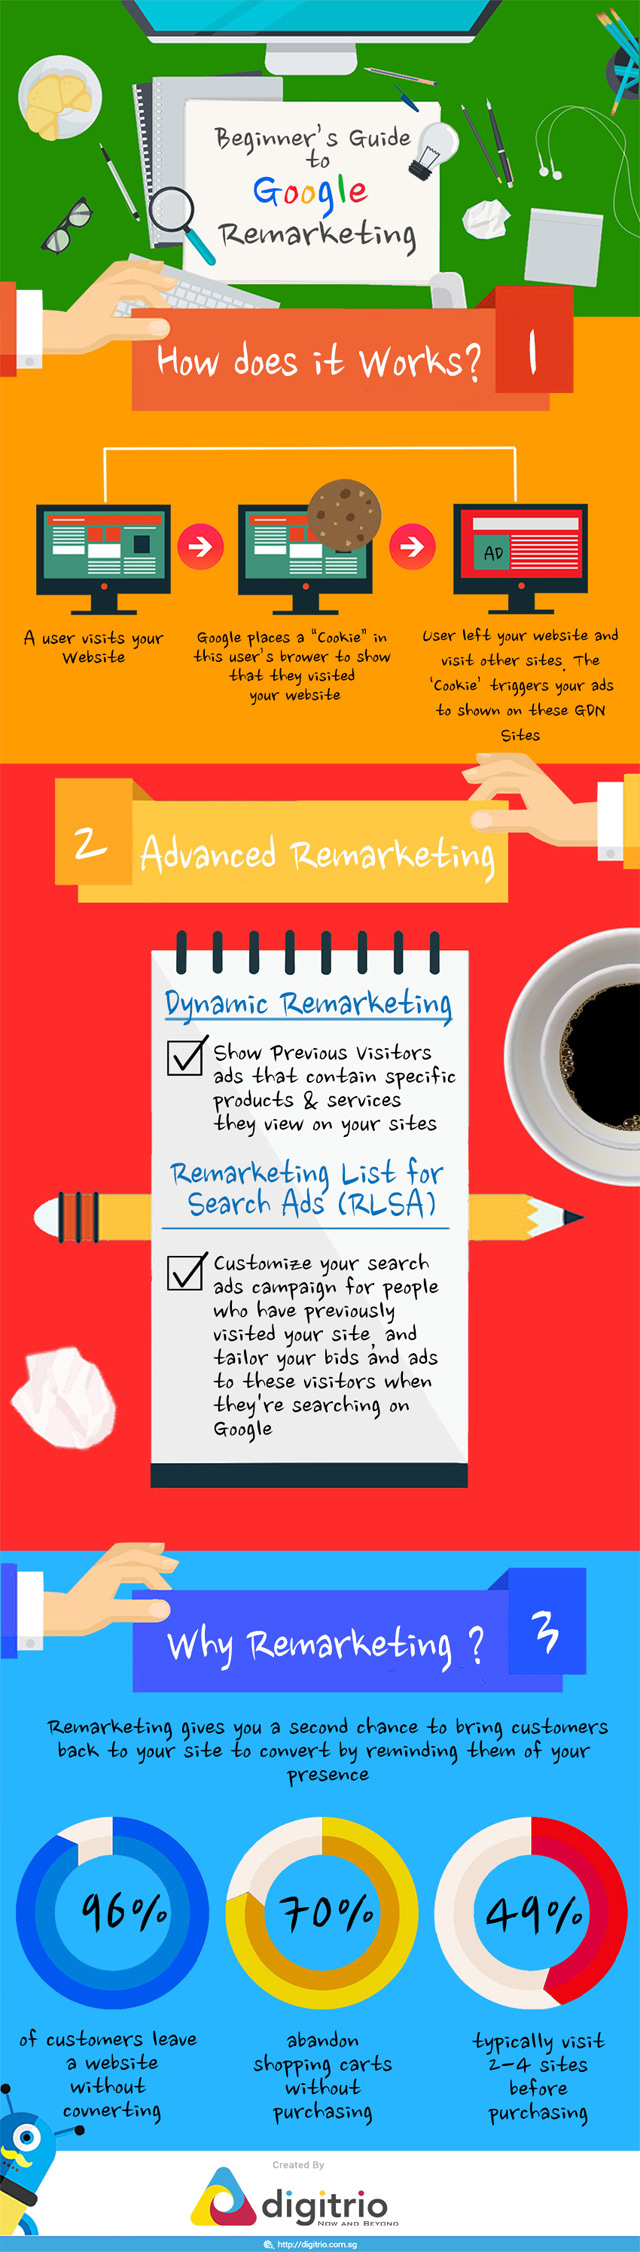 Beginner's Guide to Google Remarketing [Infographic]